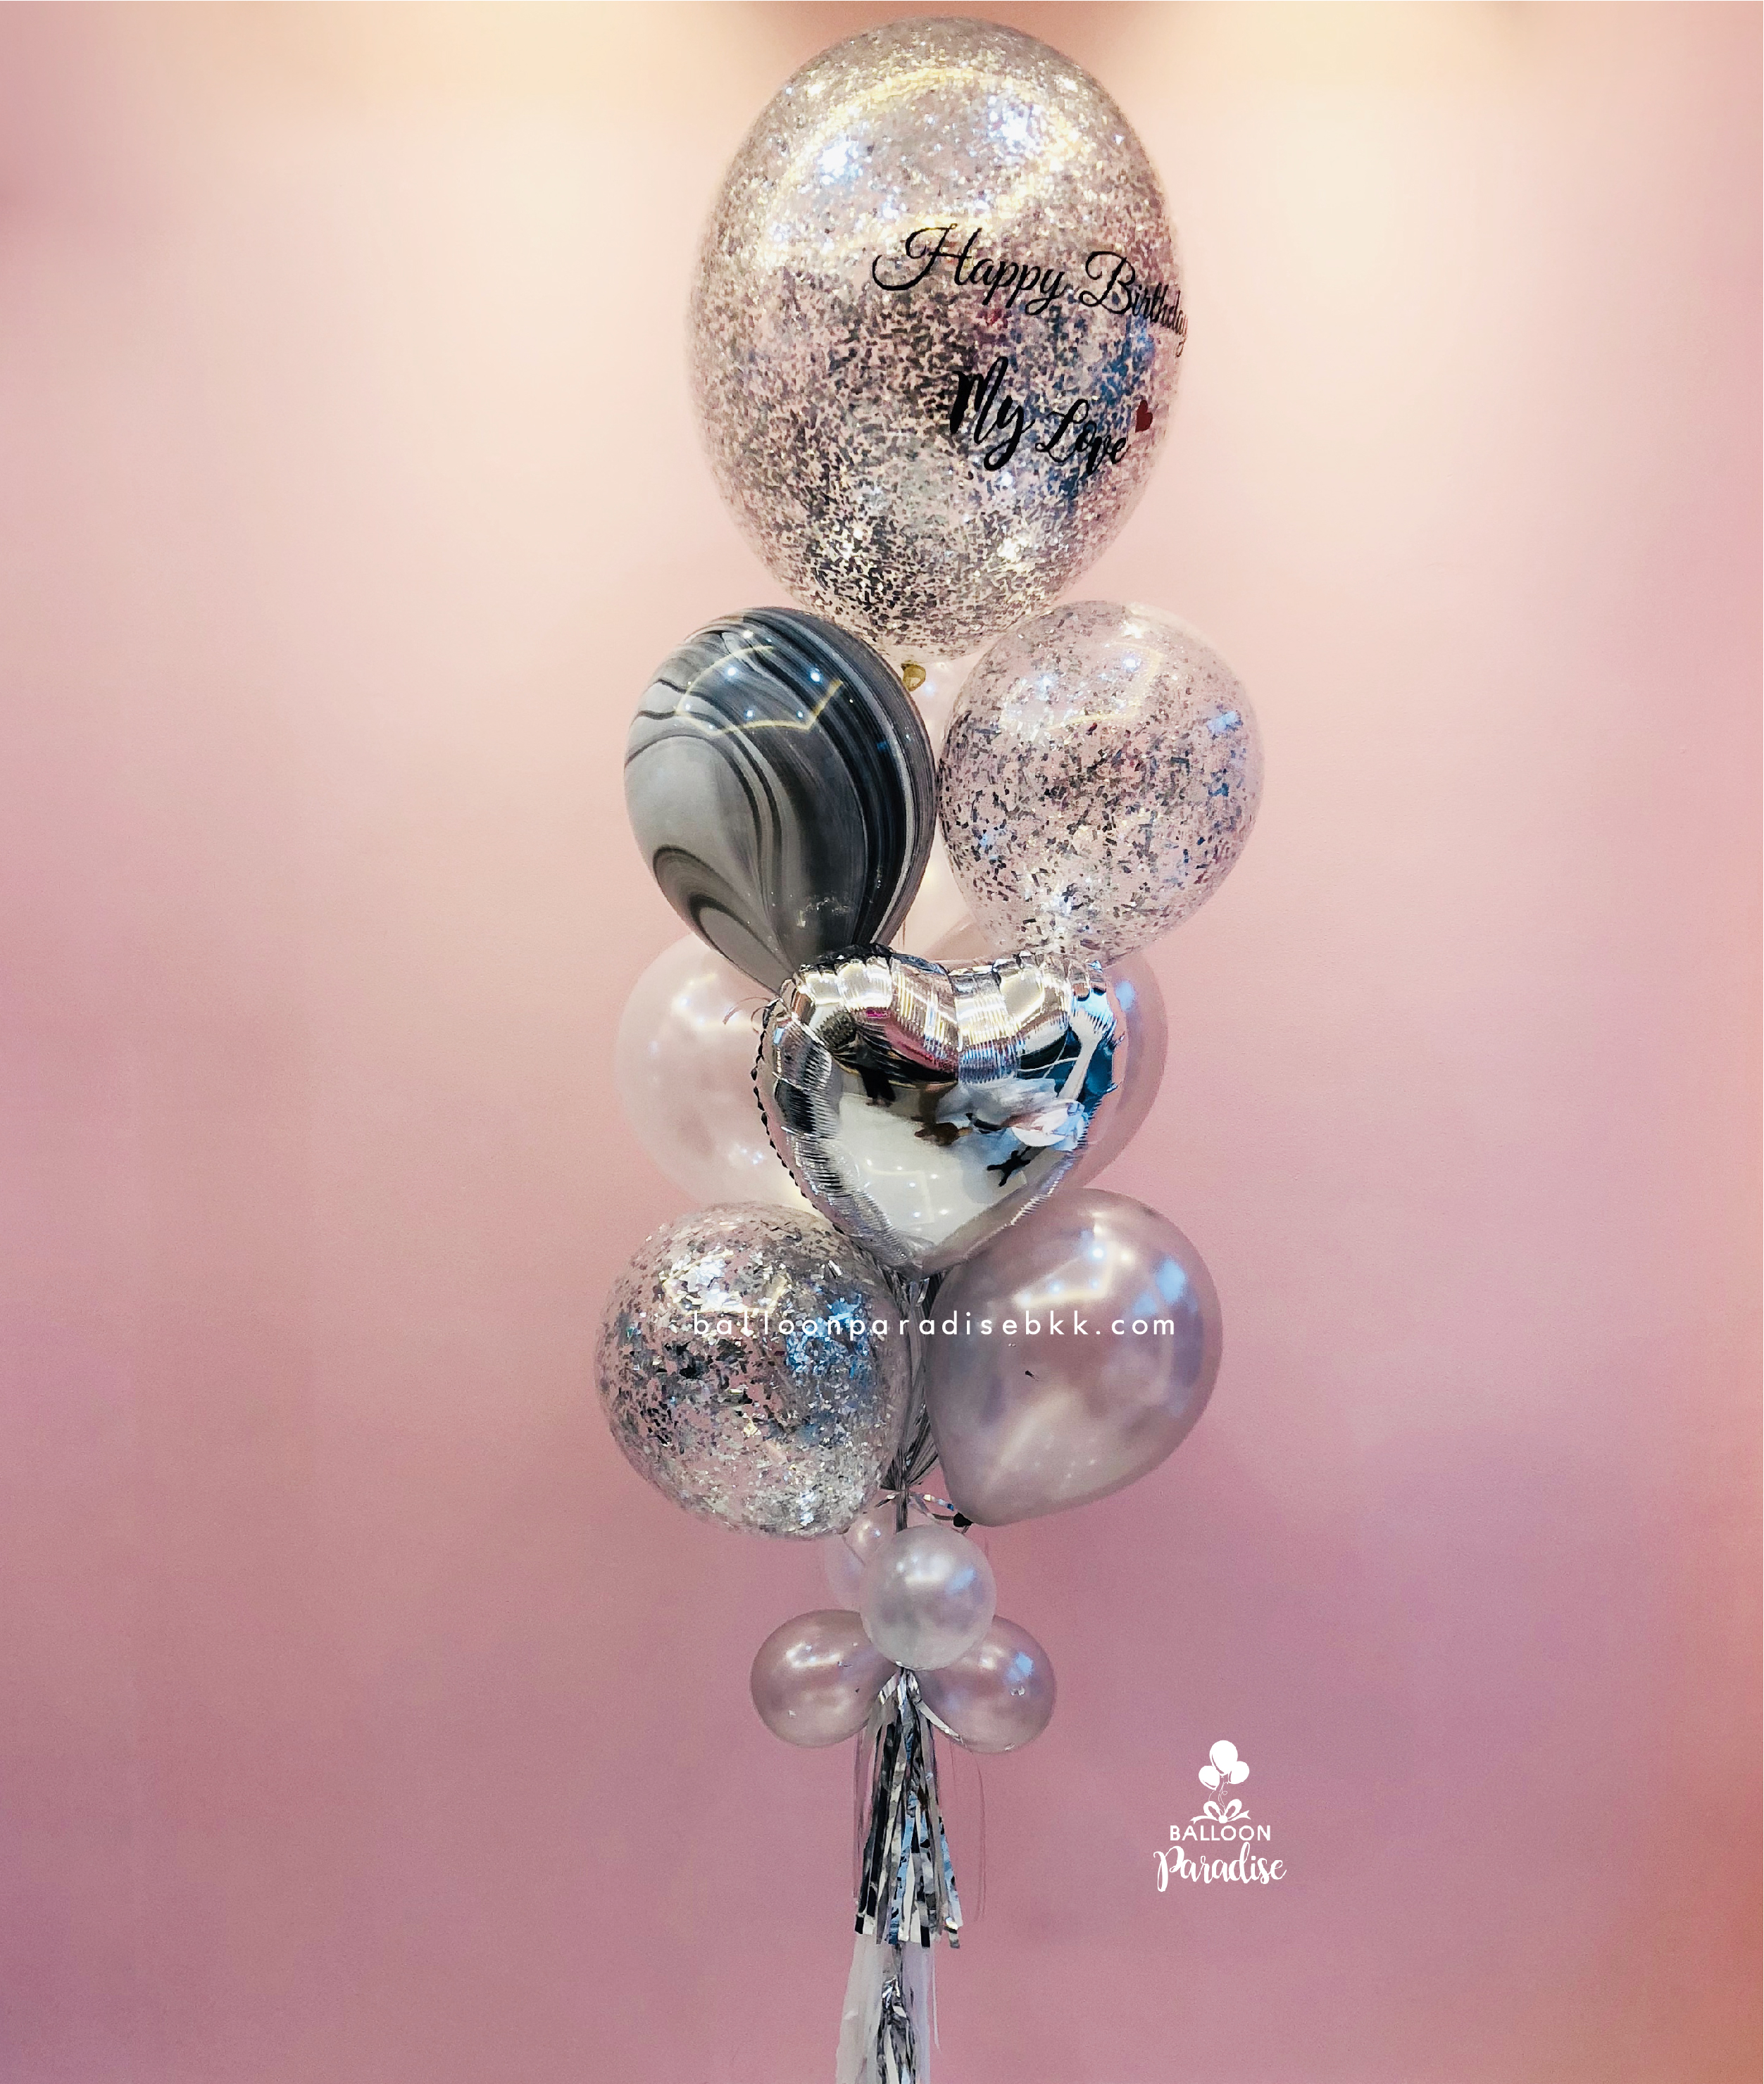 Balloon Bouquet Happy Birthday My Love Silver Marble 27 Inch 10 Pcs Hb0028